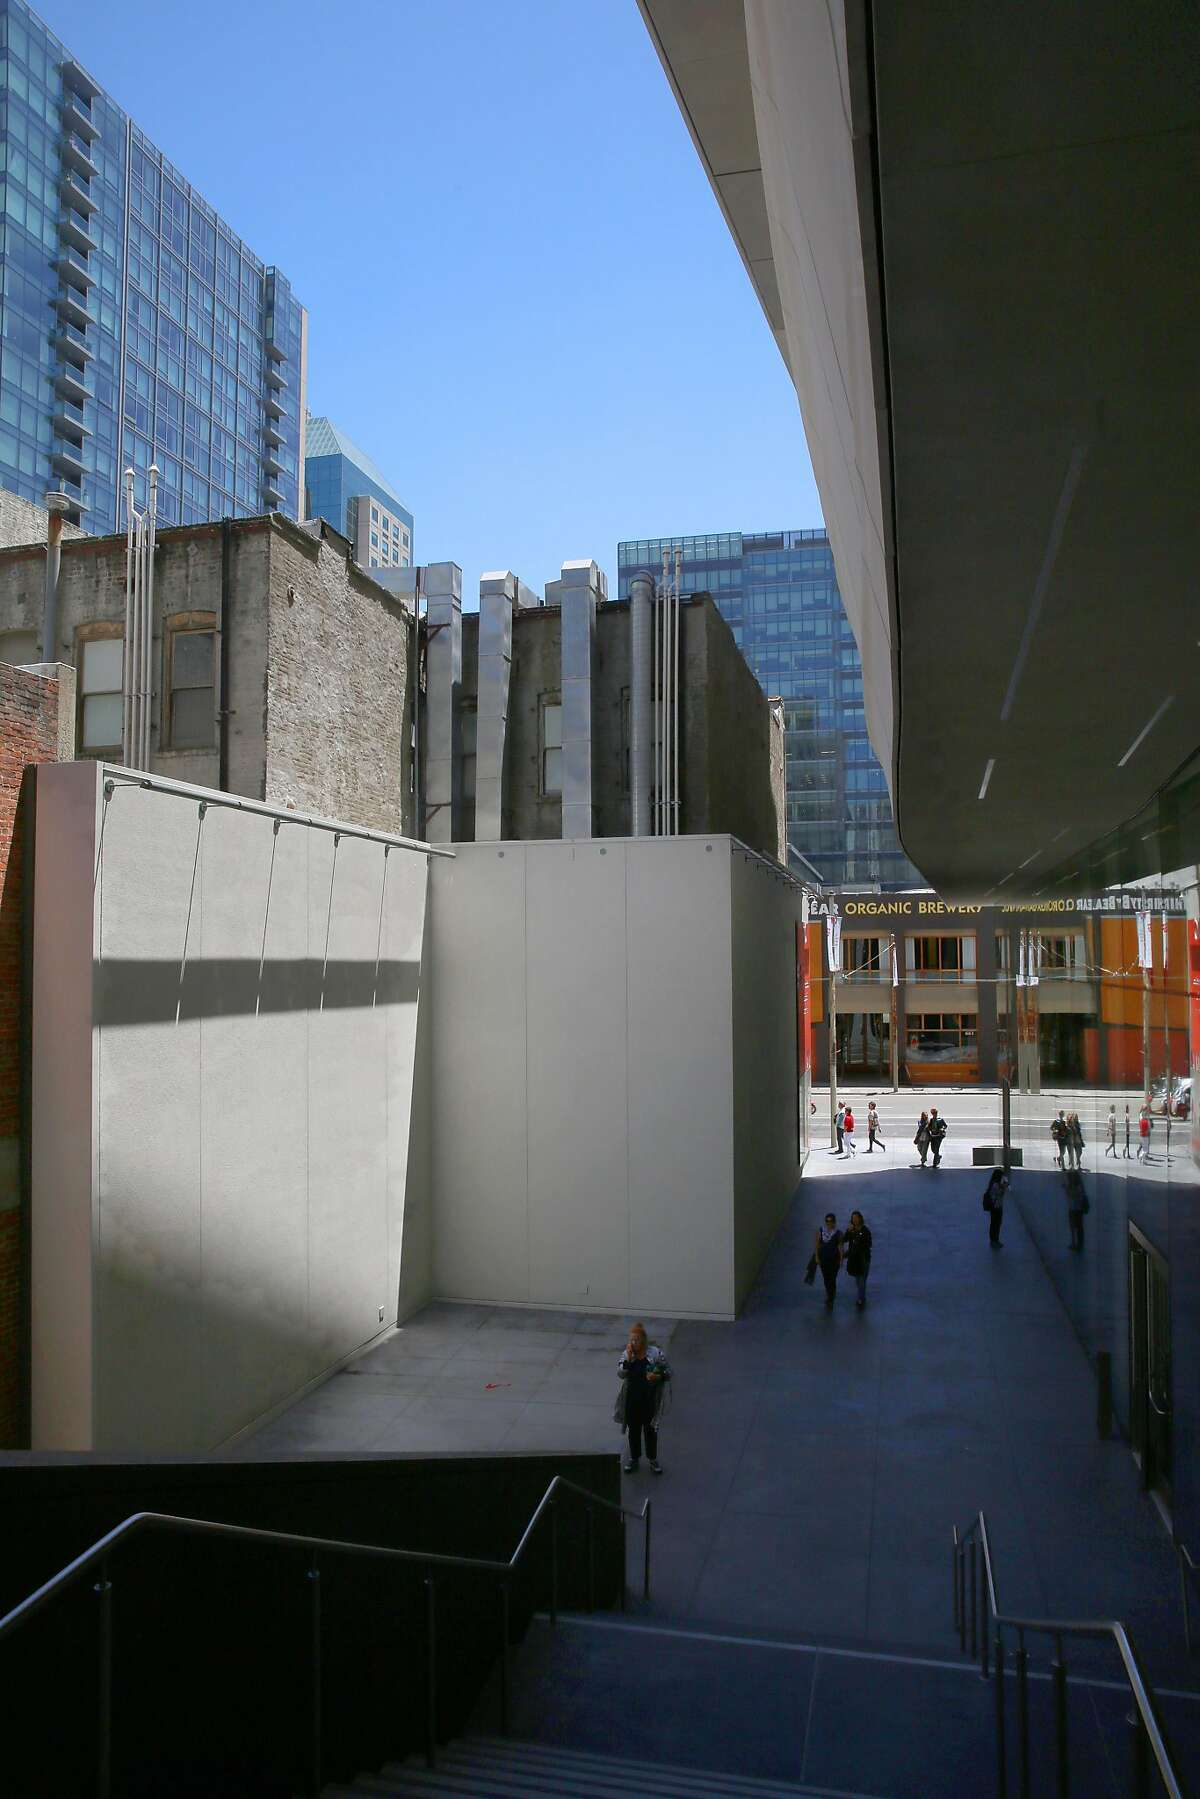 The Howard Street entrance of SFMOMA has an alley on the north side seen on Monday, May 30, 2016 in San Francisco, Calif. The SFMOMA building (right) heightens our impressions of its surroundings.